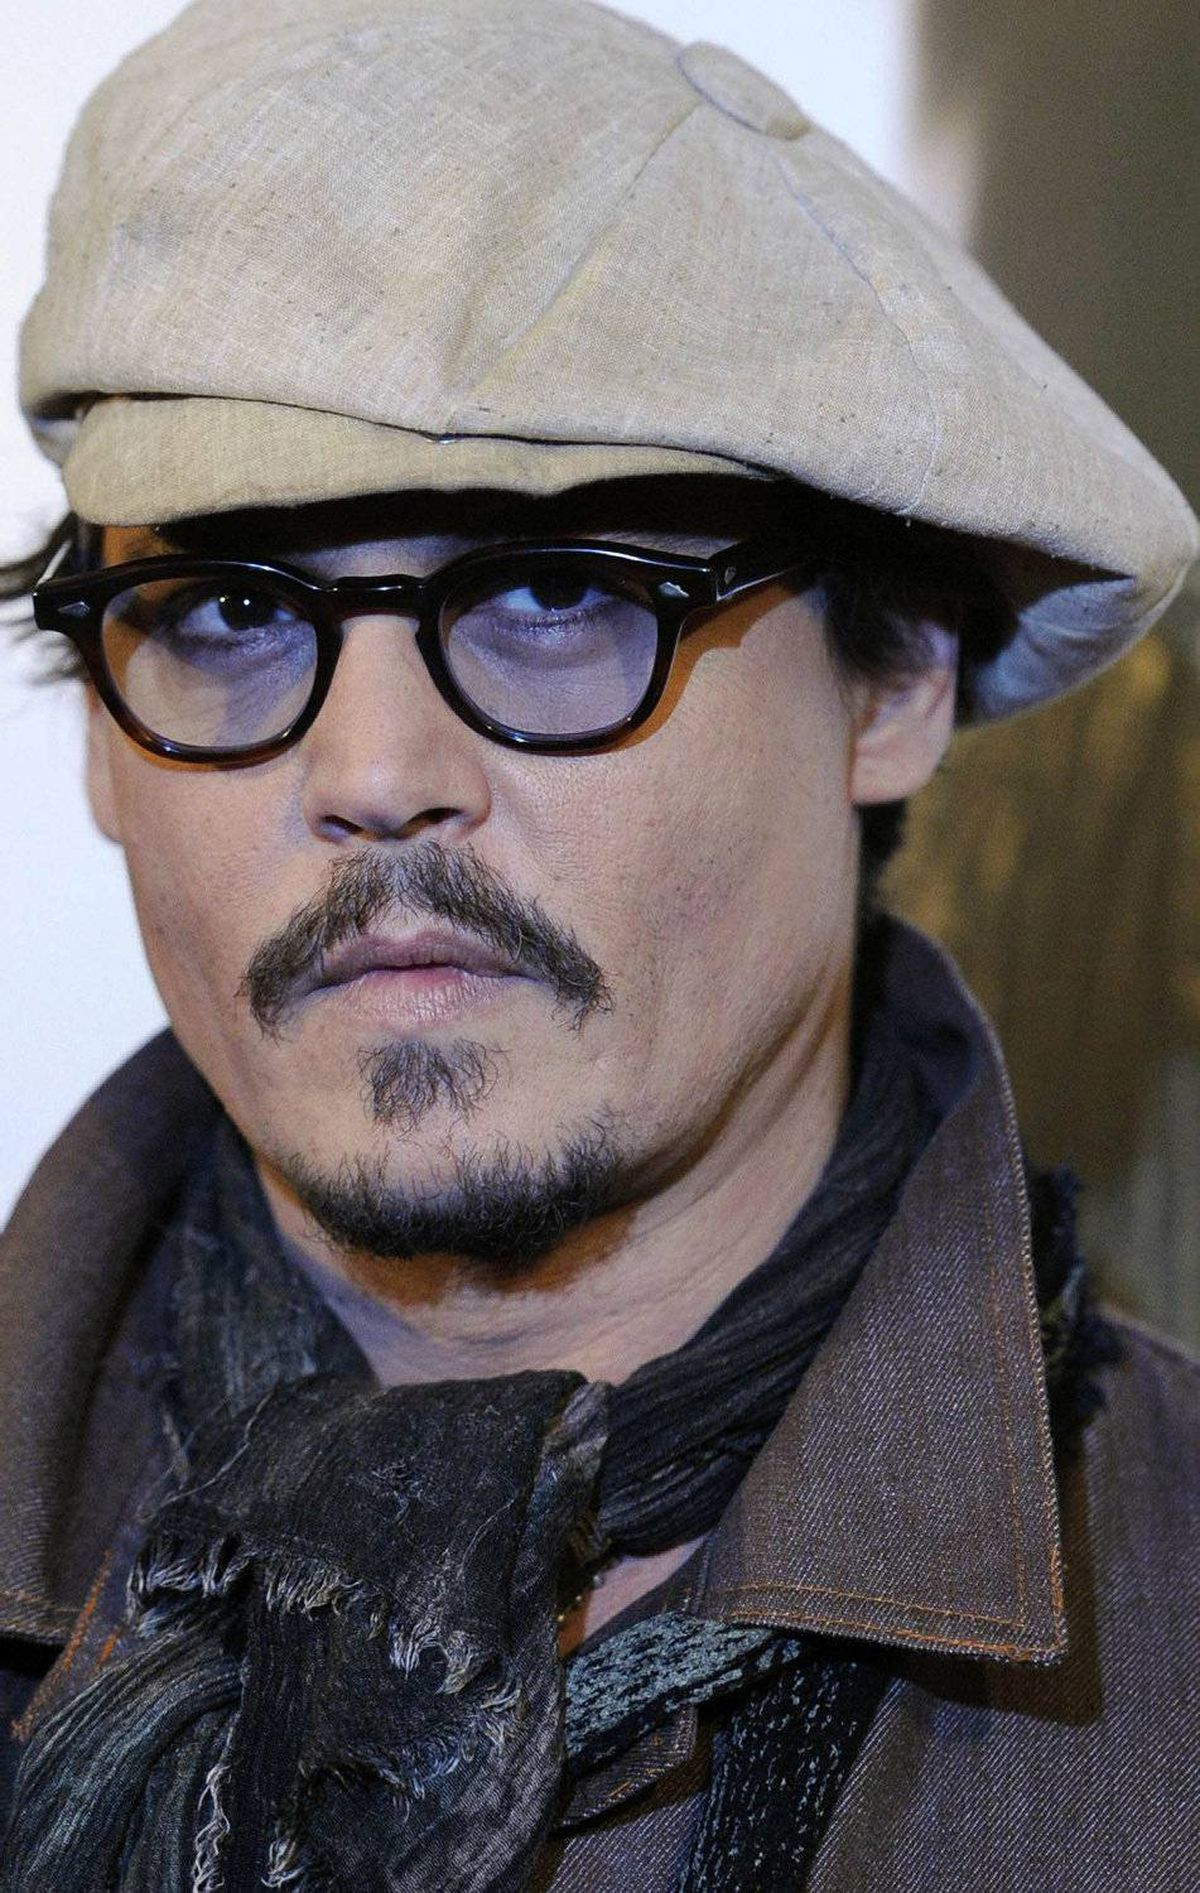 Johnny Depp has also won twice - taking the honour in 2003 and 2009.